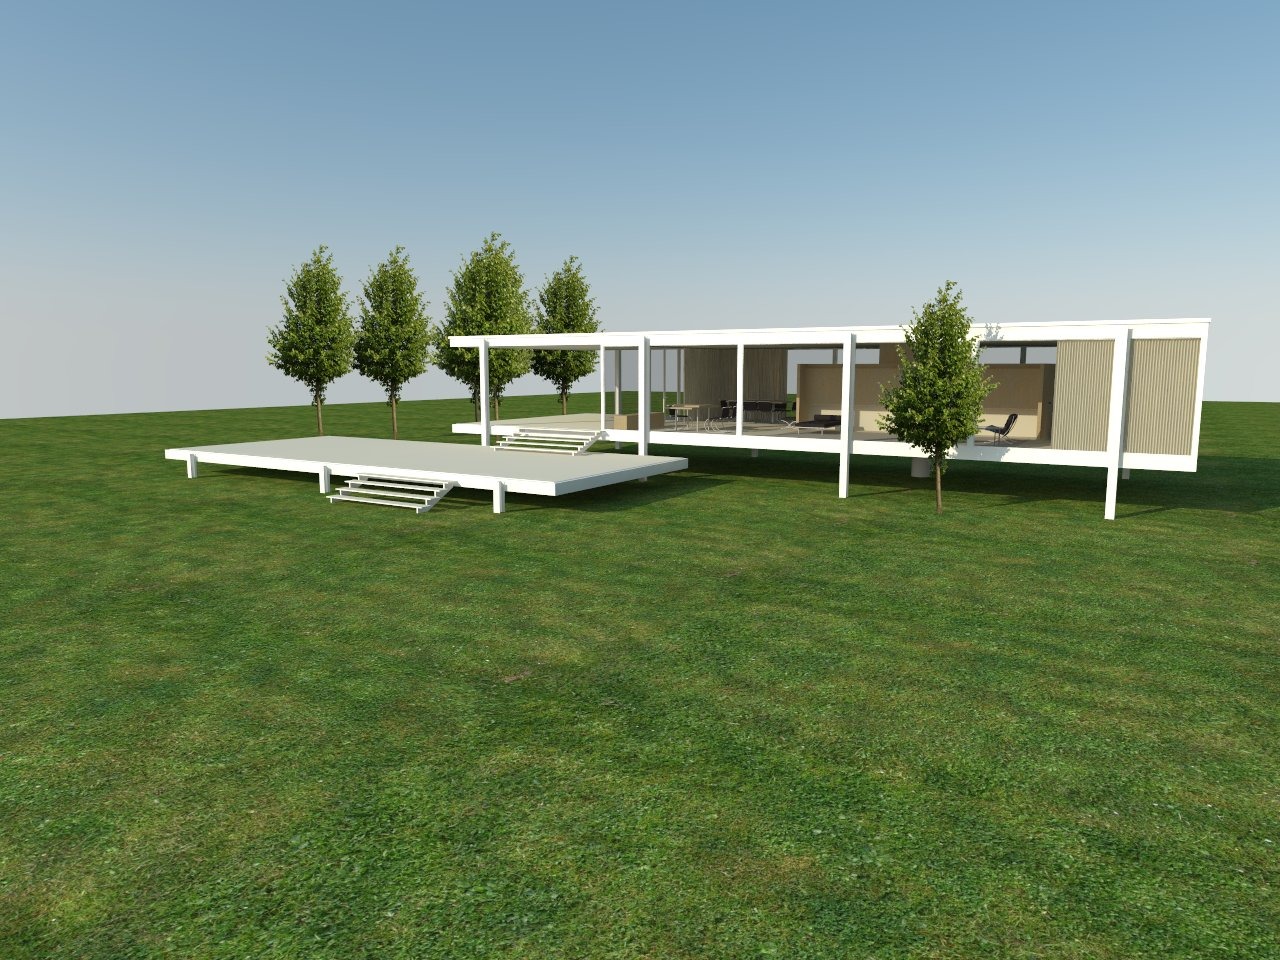 Exterior: SketchUp Plugins For Architecture Modeling And